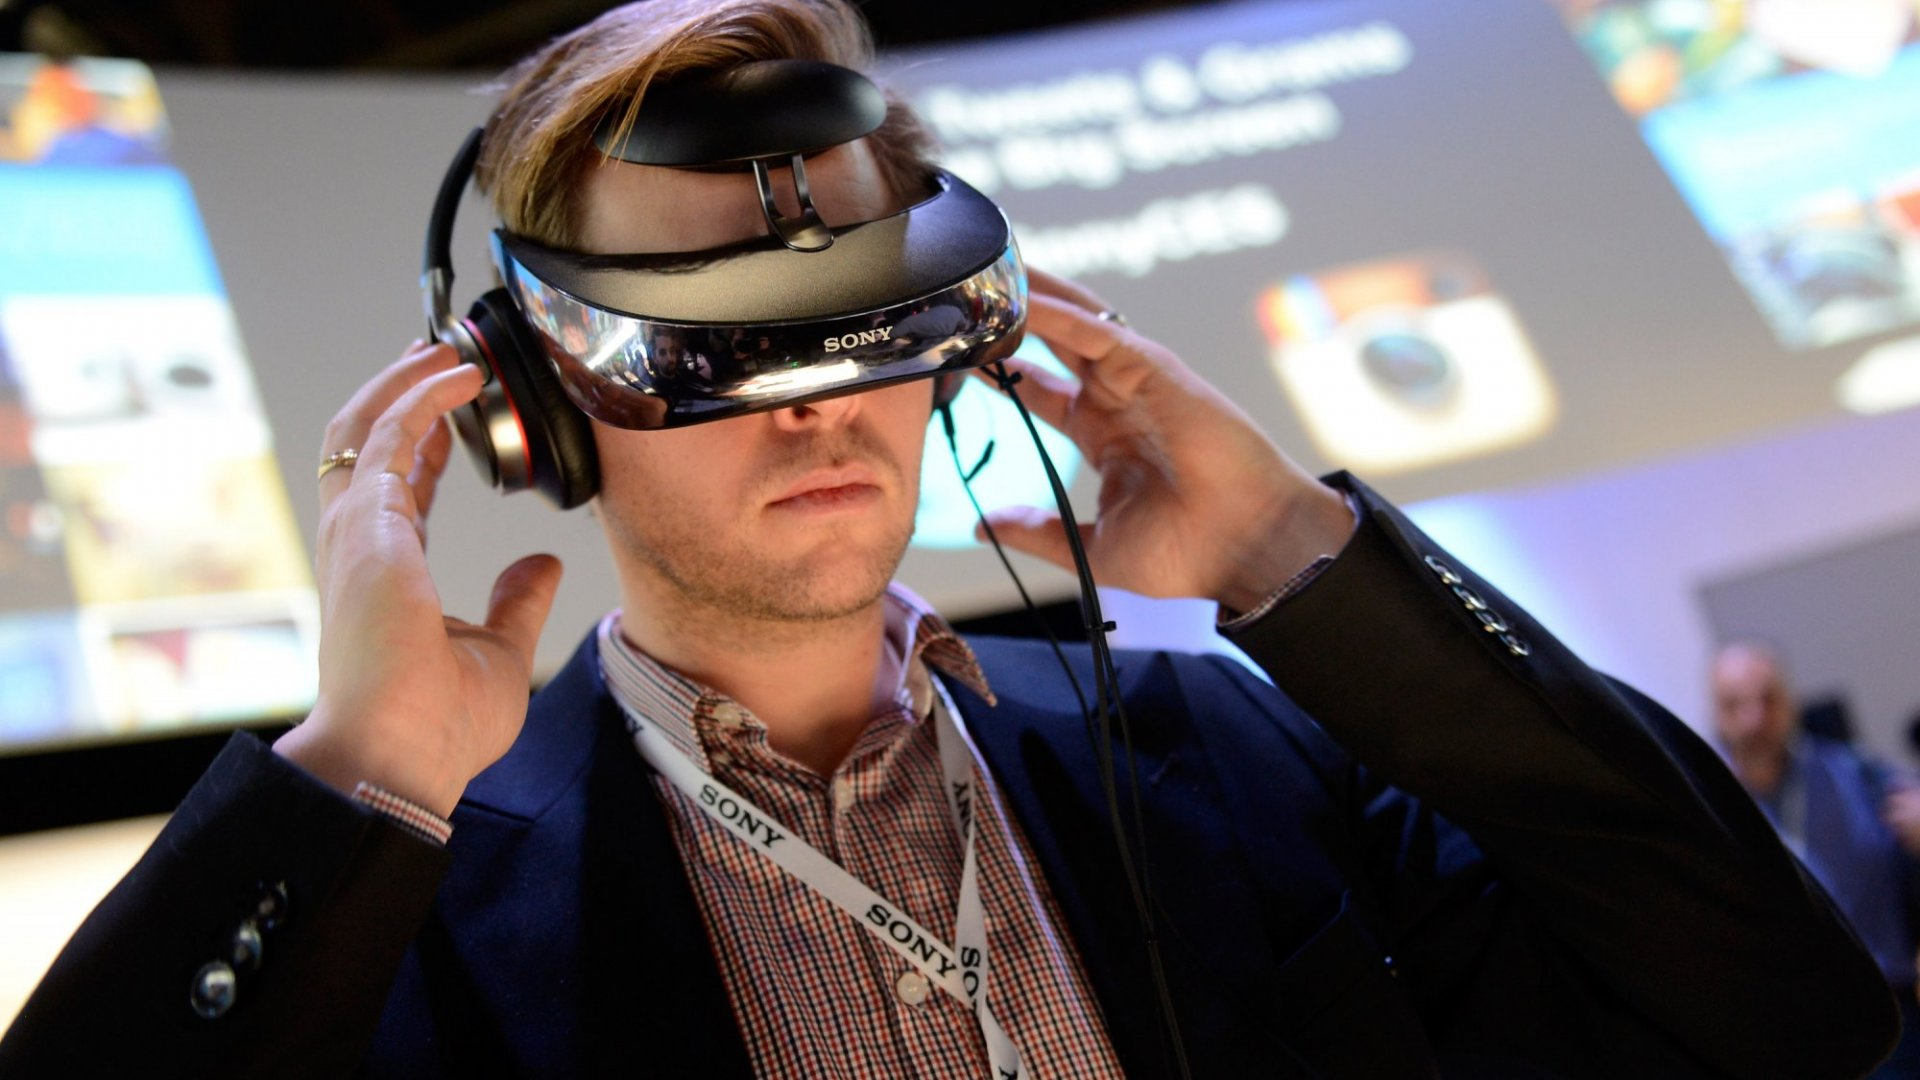 CES 2017: 10 Tech Trends To Expect at This Year's Show